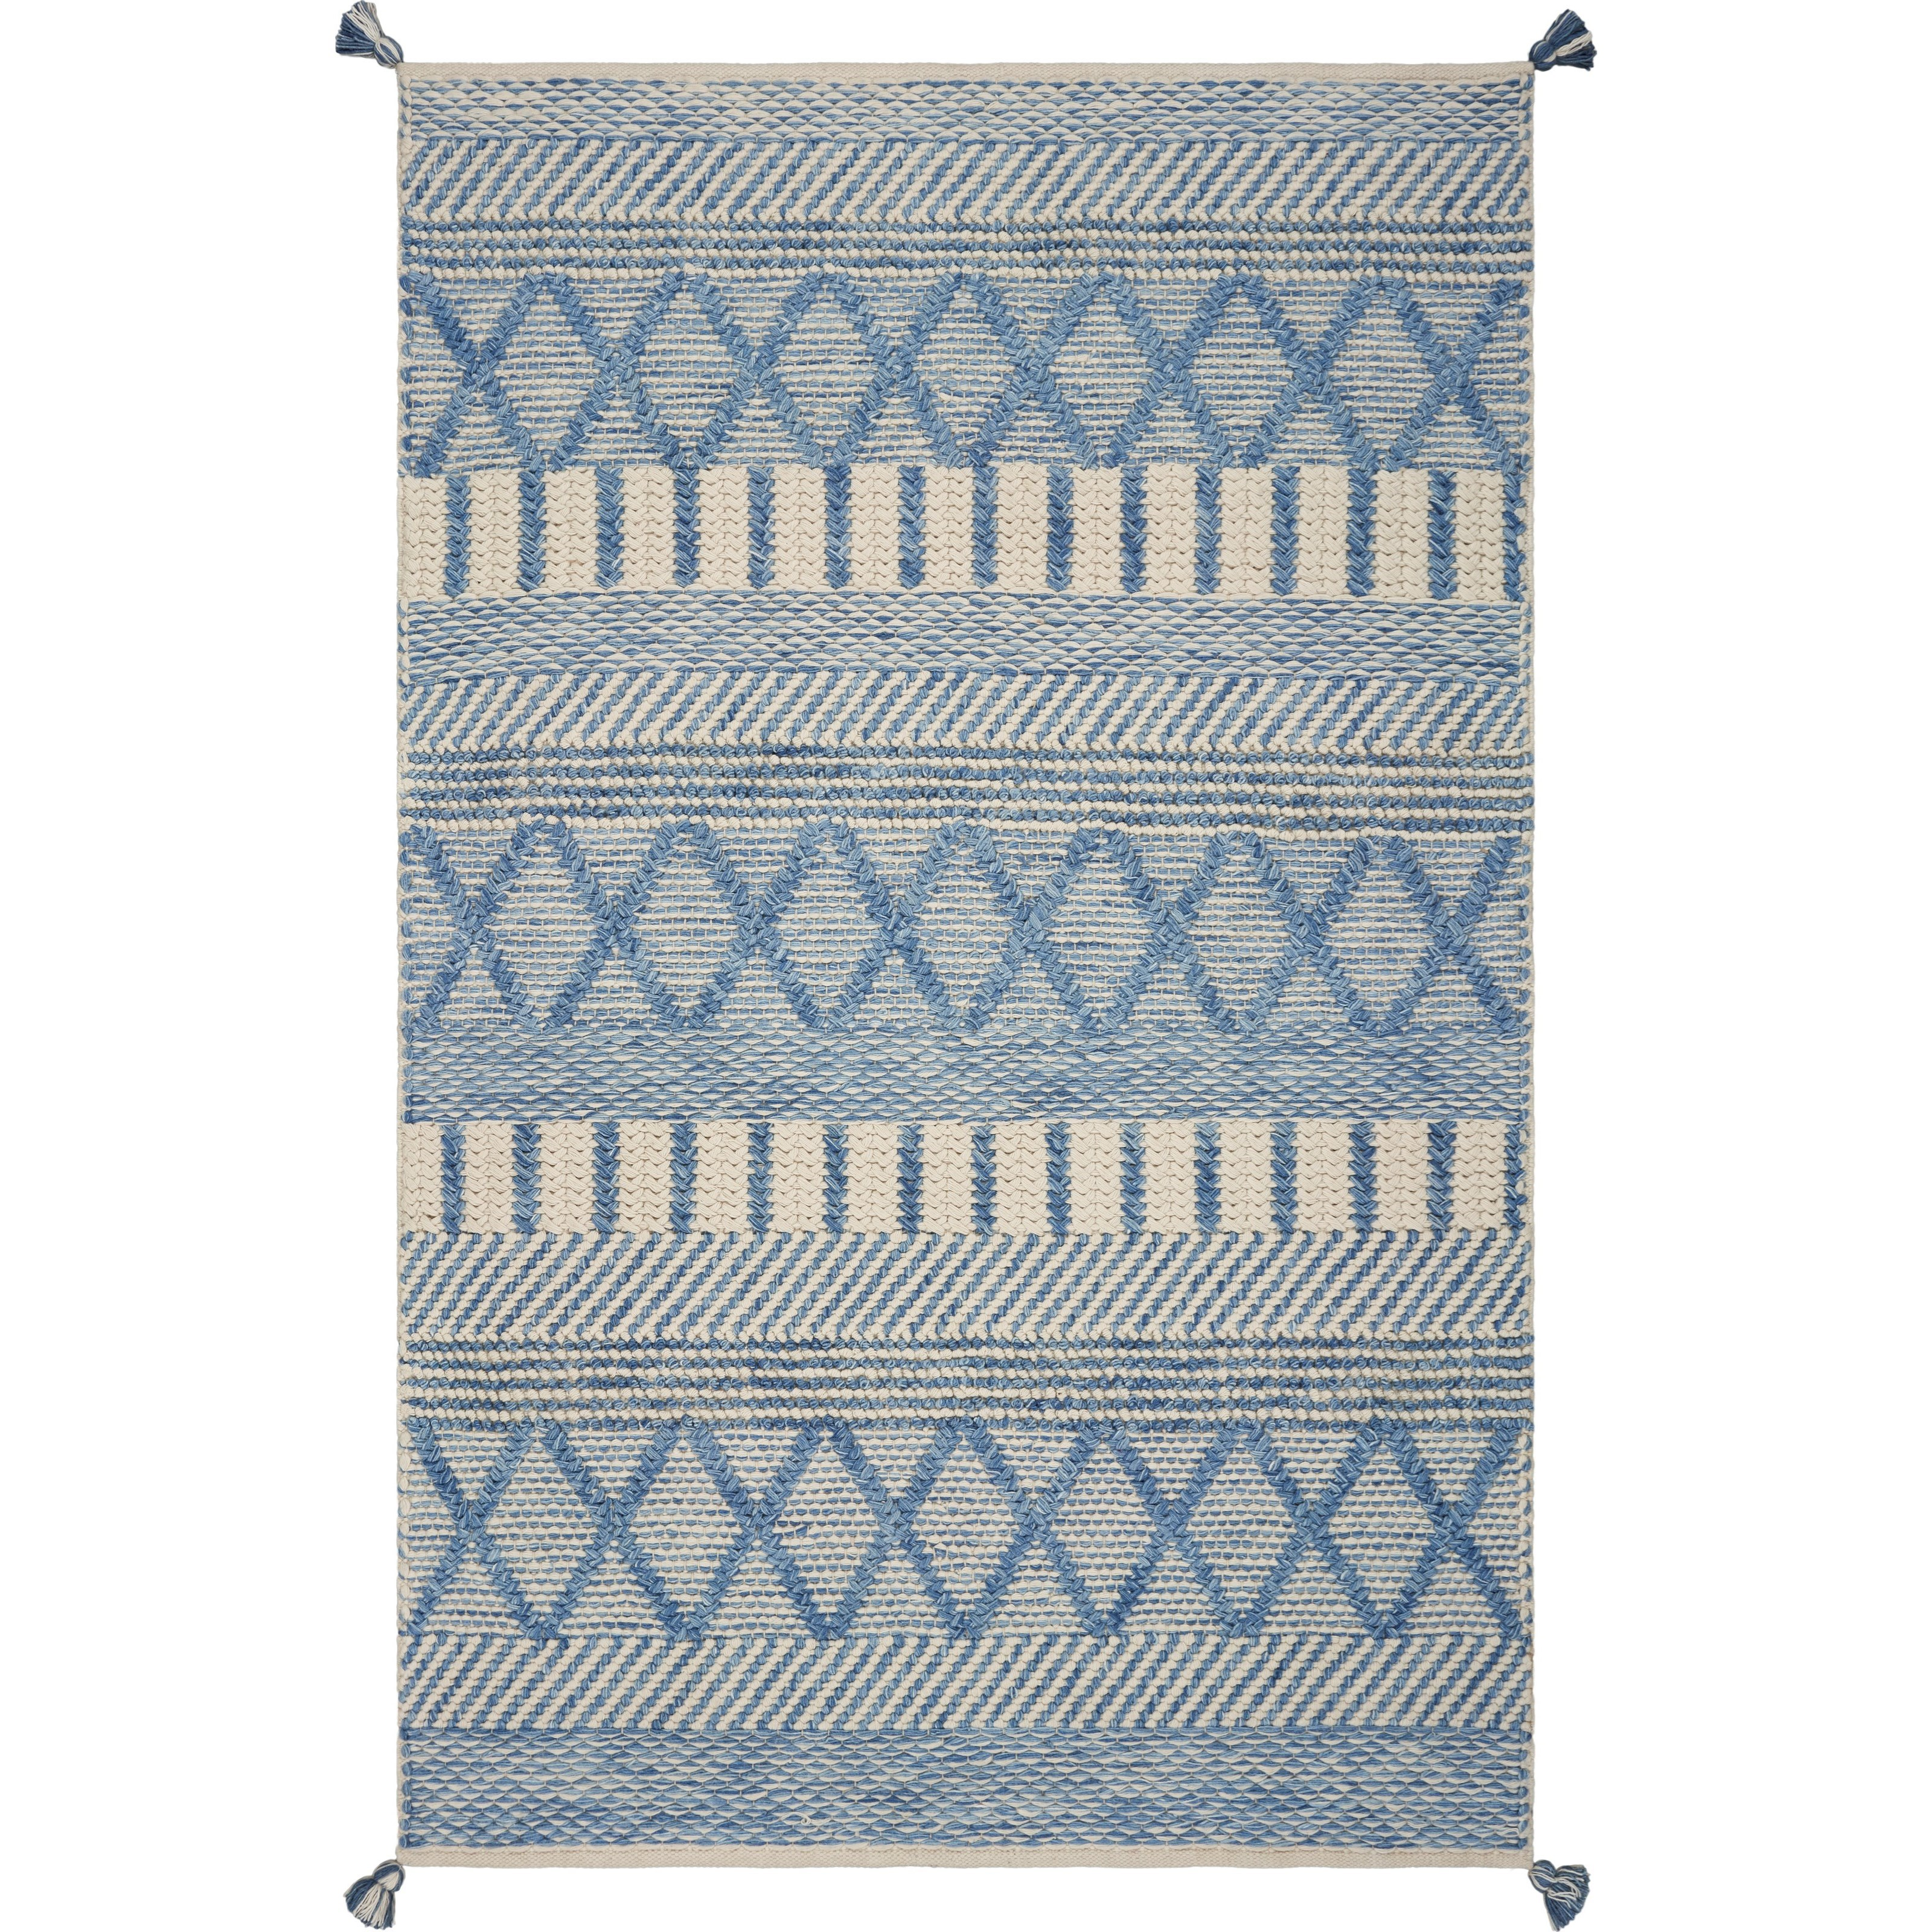 "Hang Ten: Malibu 3'3"" x 5'3"" Denim Santa Cruz Rug by Kas at Zak's Home"